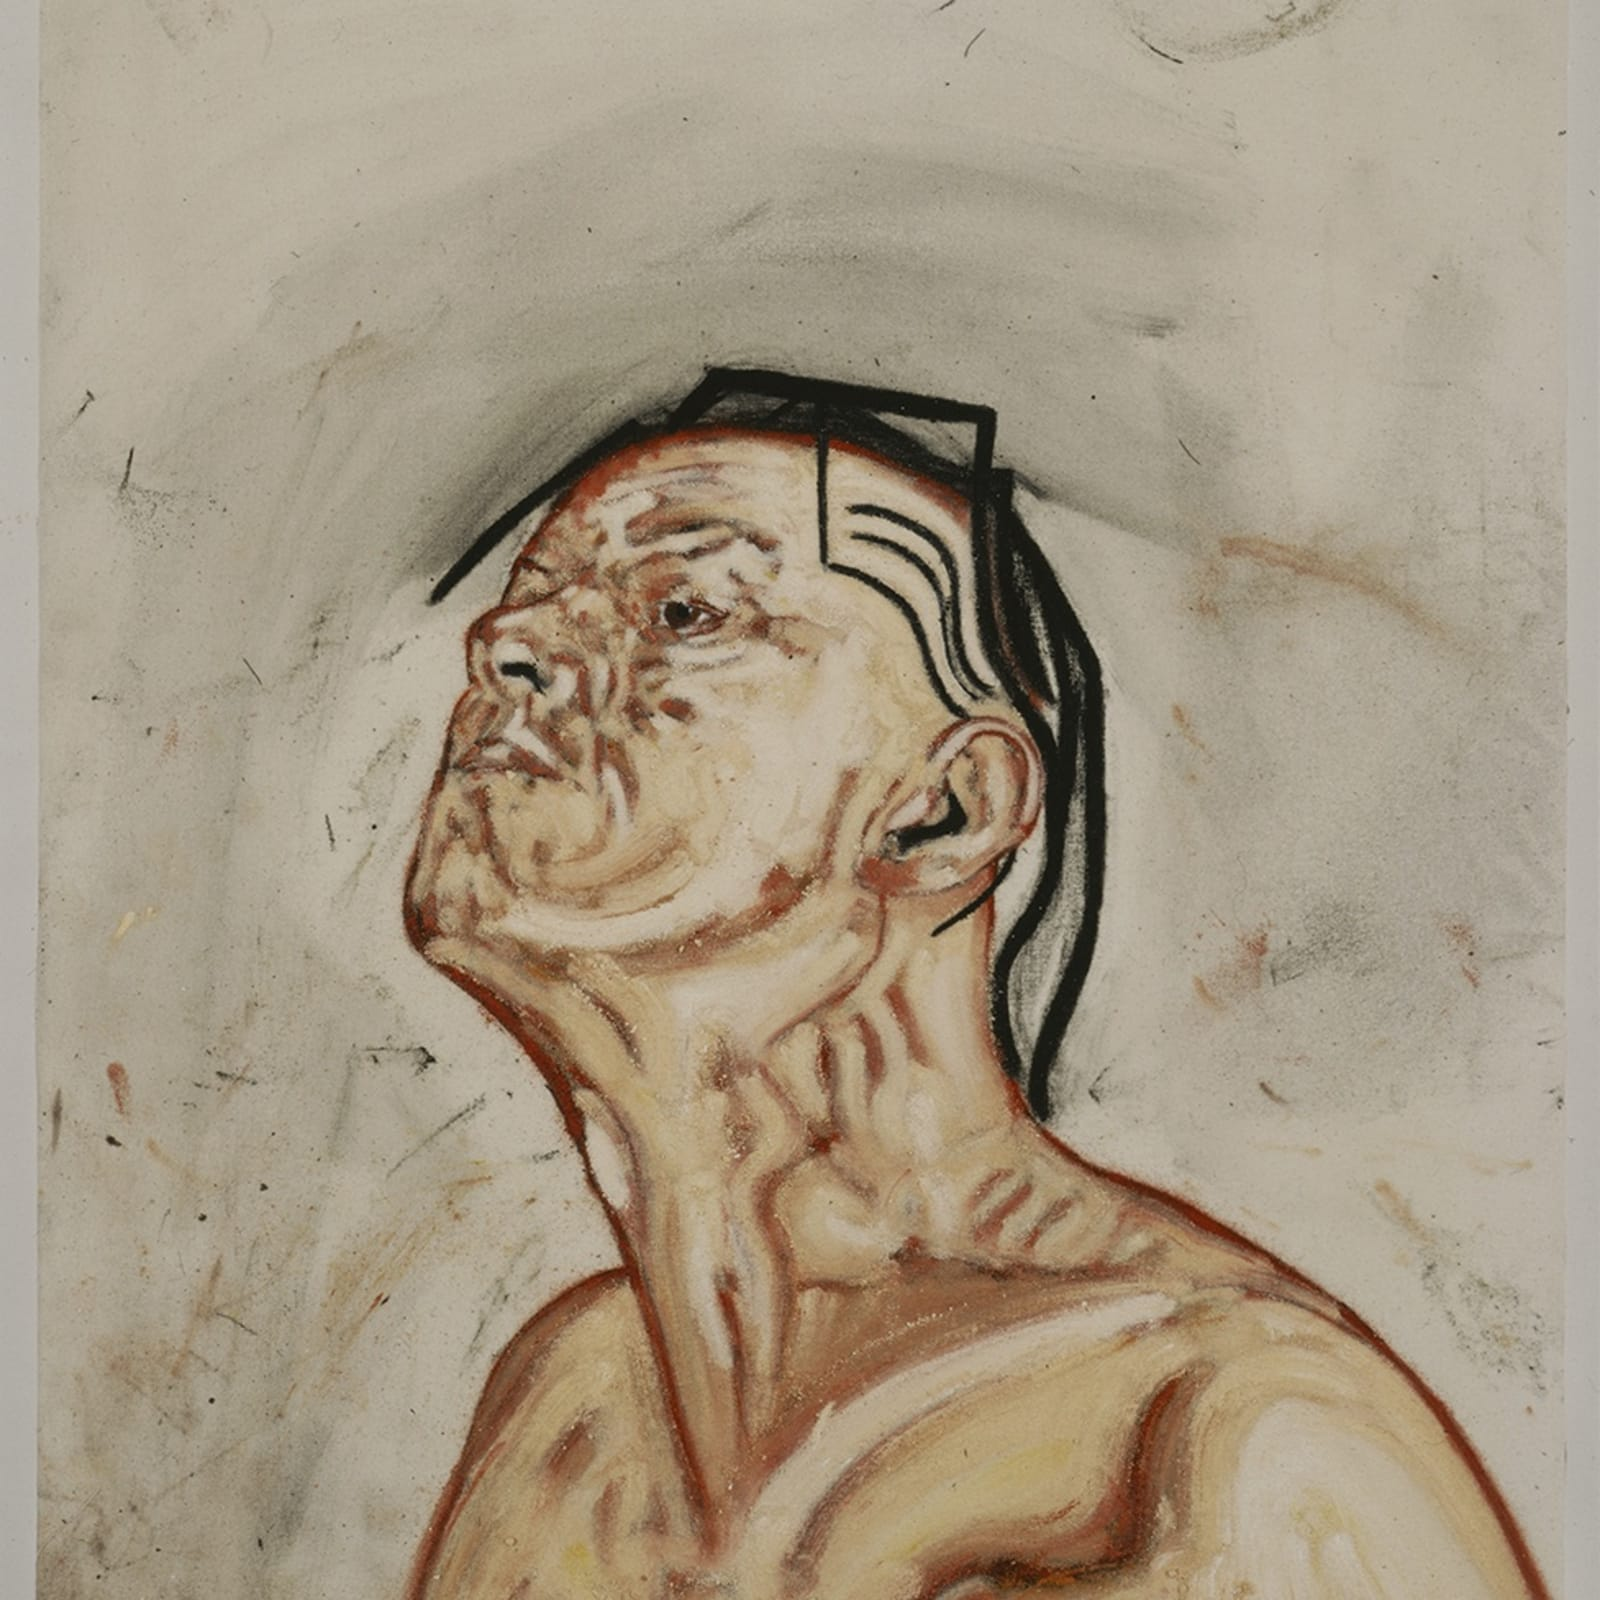 Tony Bevan, Self Portrait (PC923), 1992